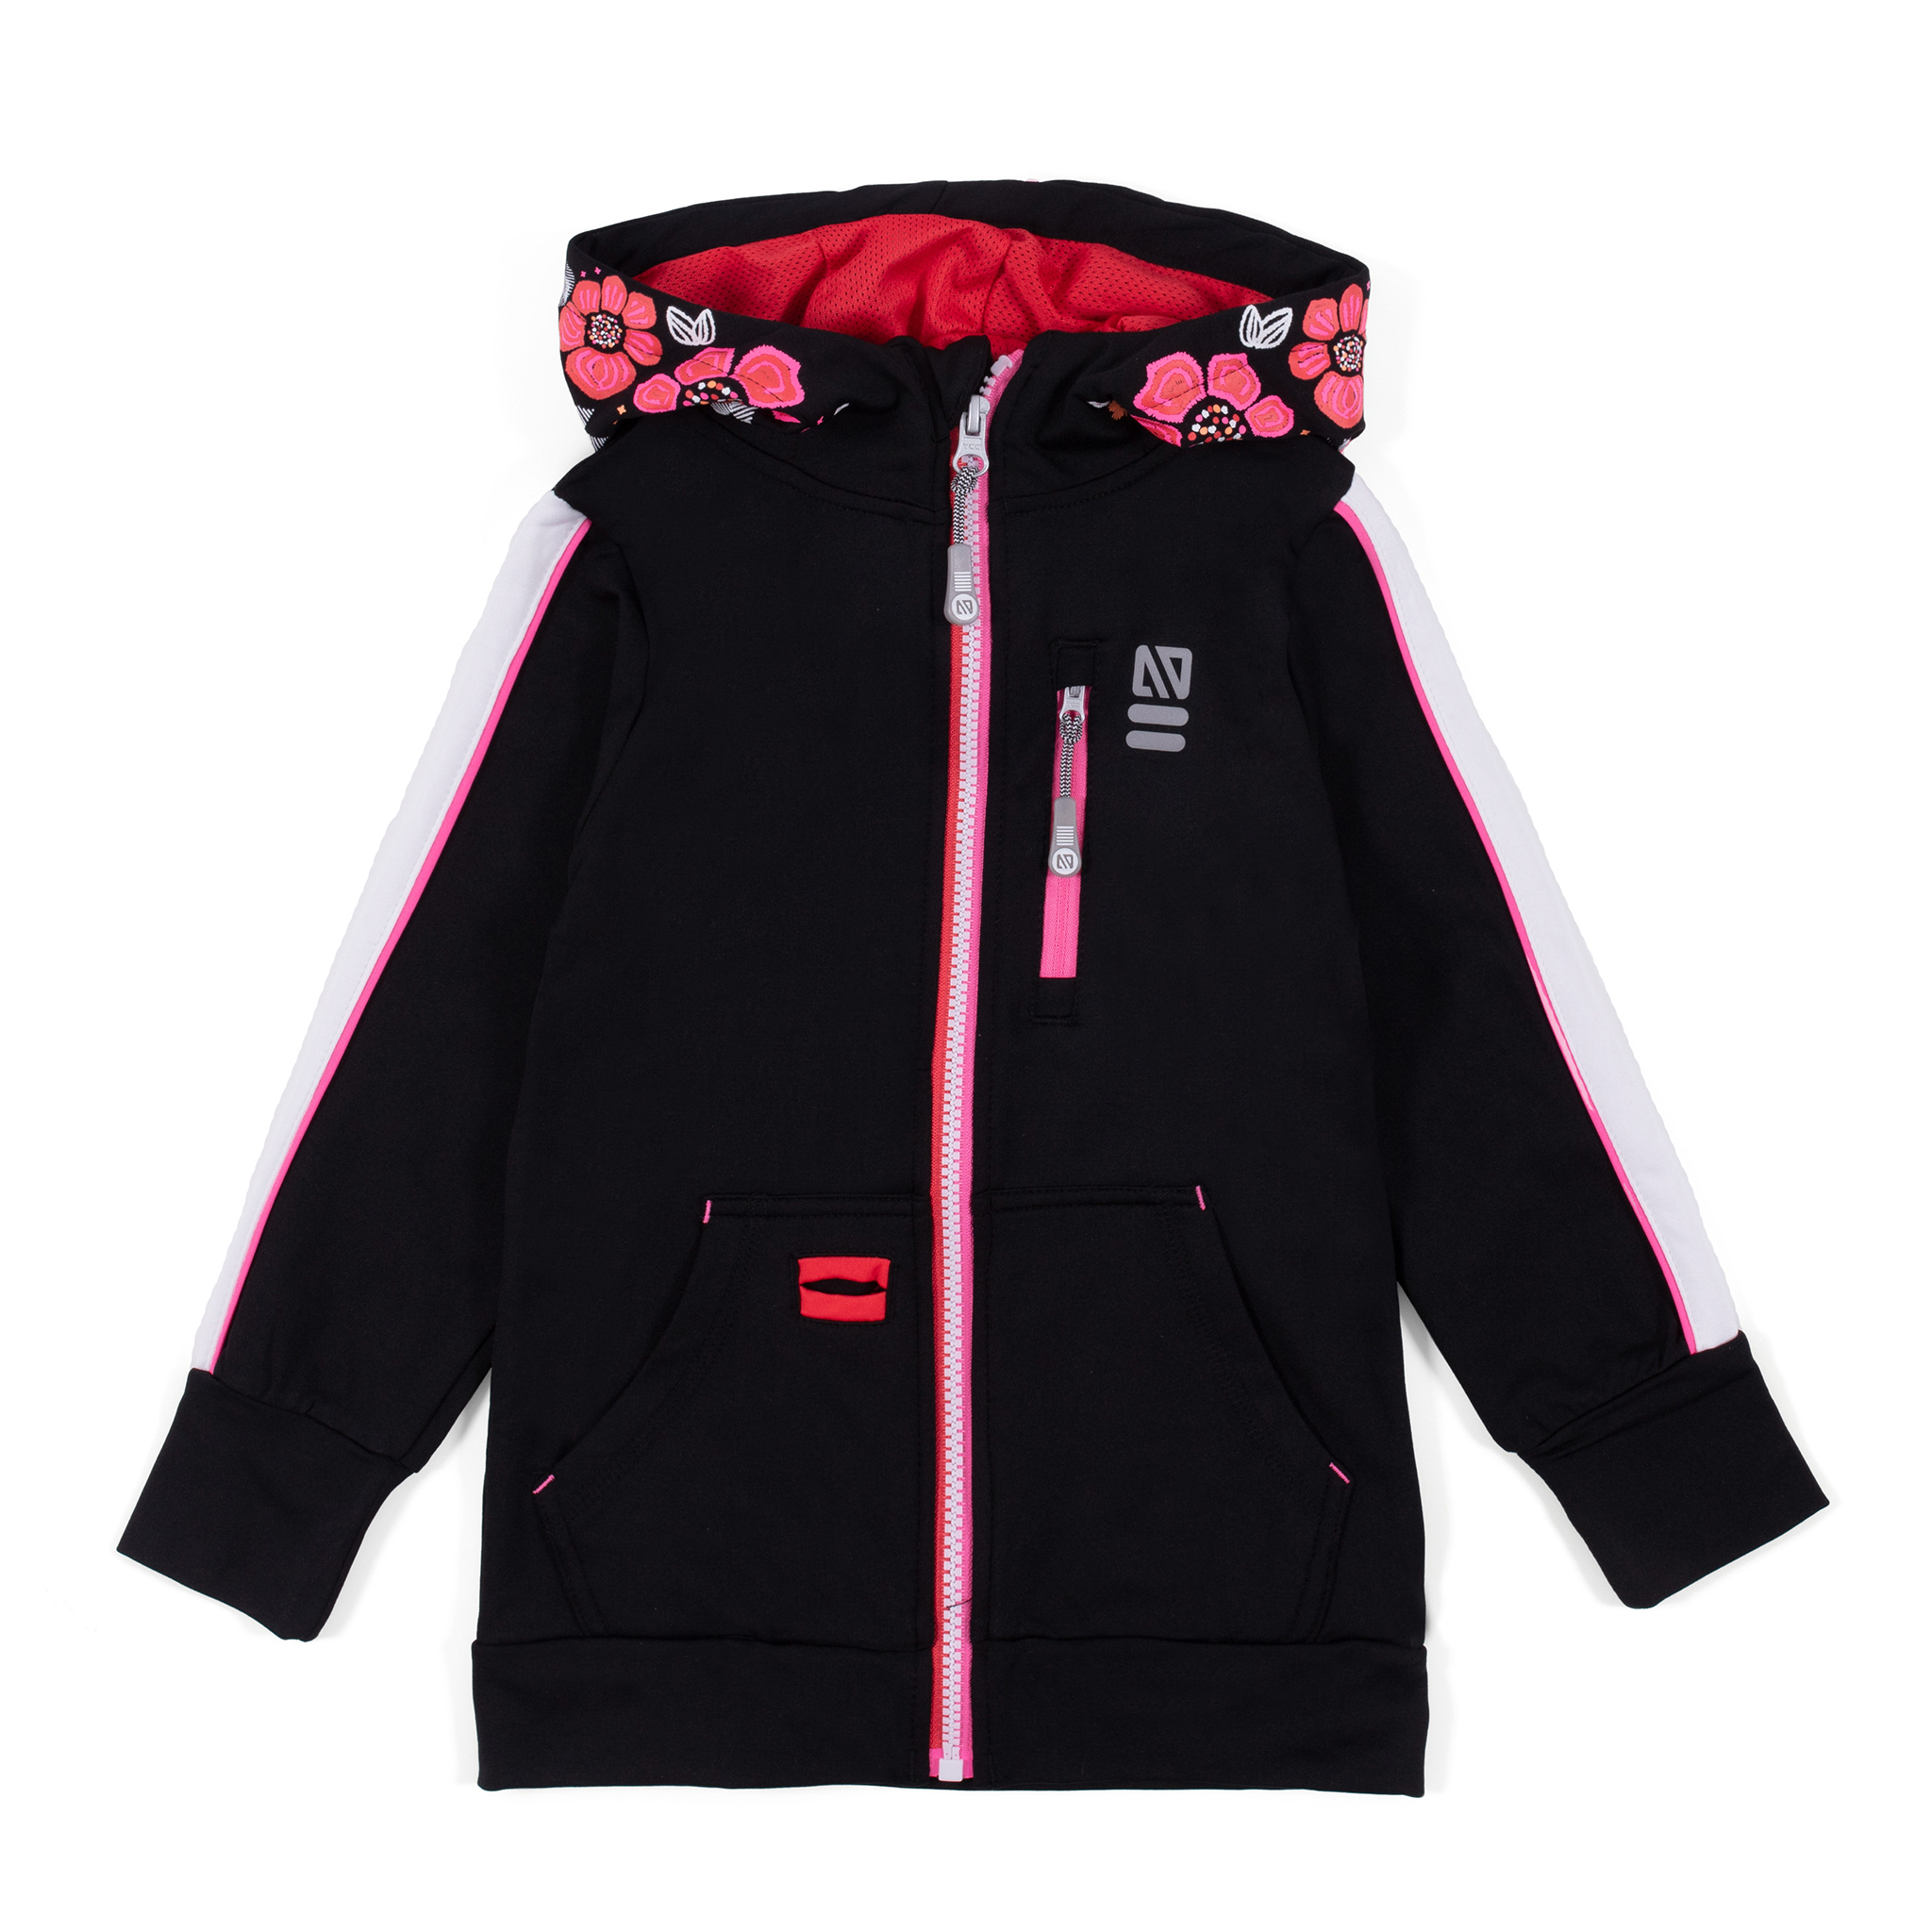 Athletic zip hoodie - Black - Girls